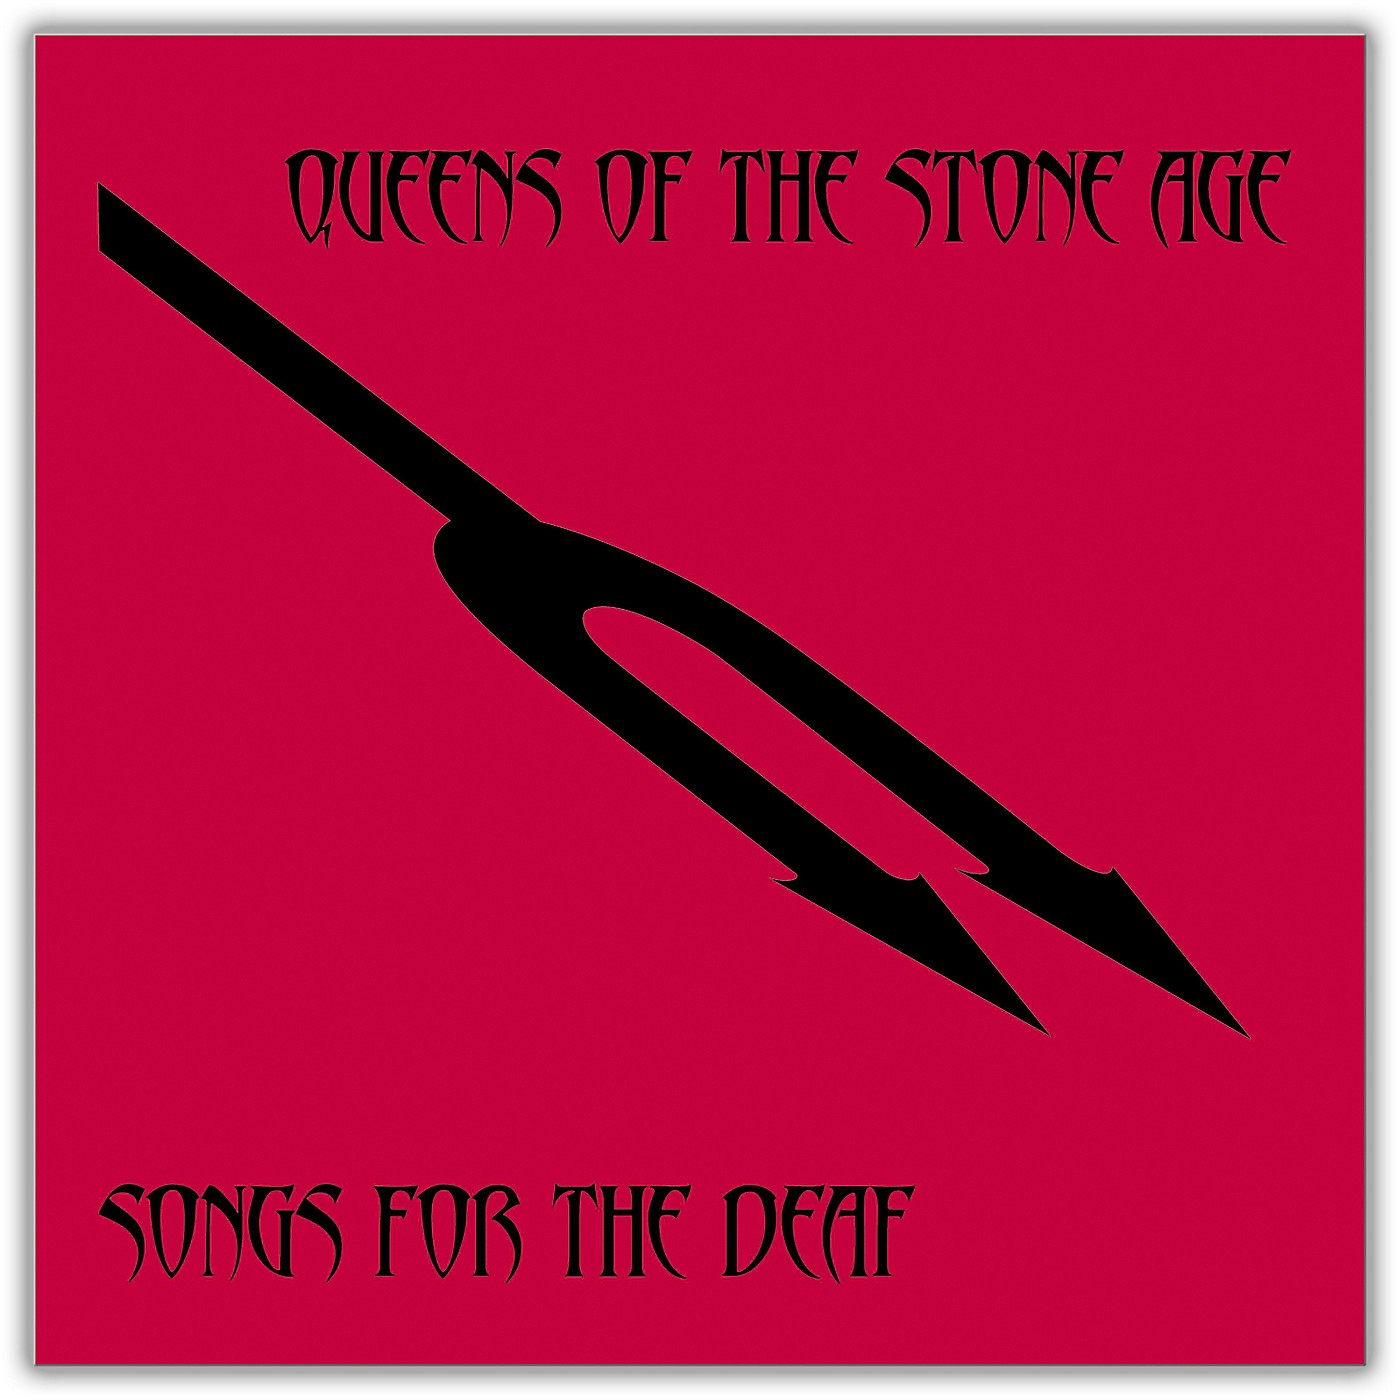 Universal Music Group Queens of the Stone Age - Songs for the Deaf LP thumbnail